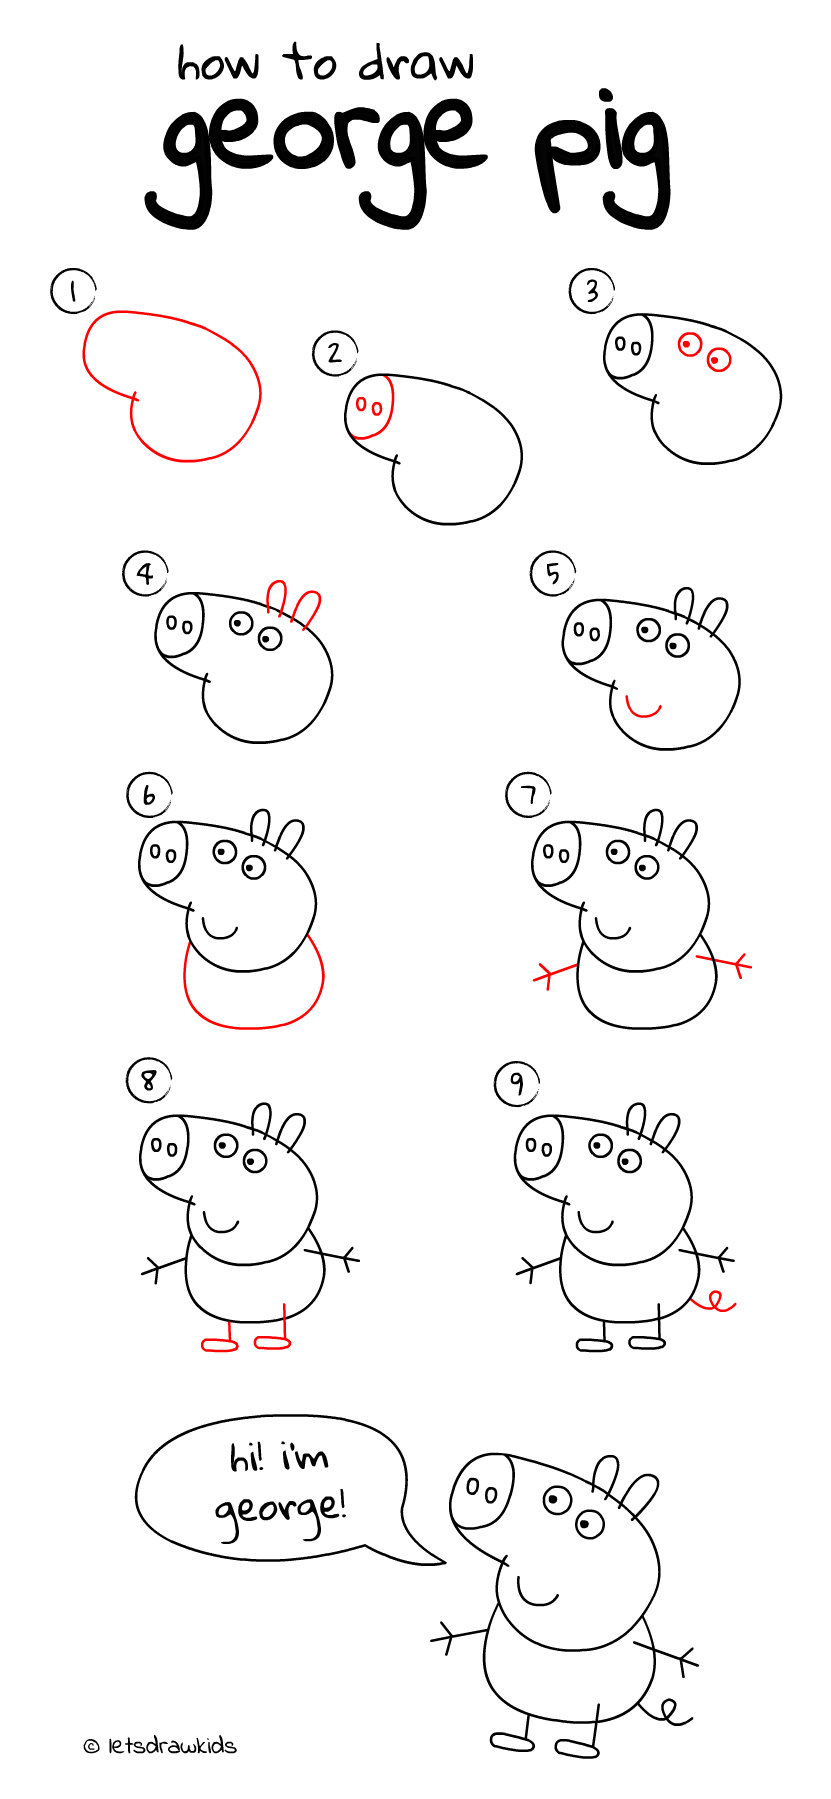 How to draw george pig easy drawing step by step perfect for kids